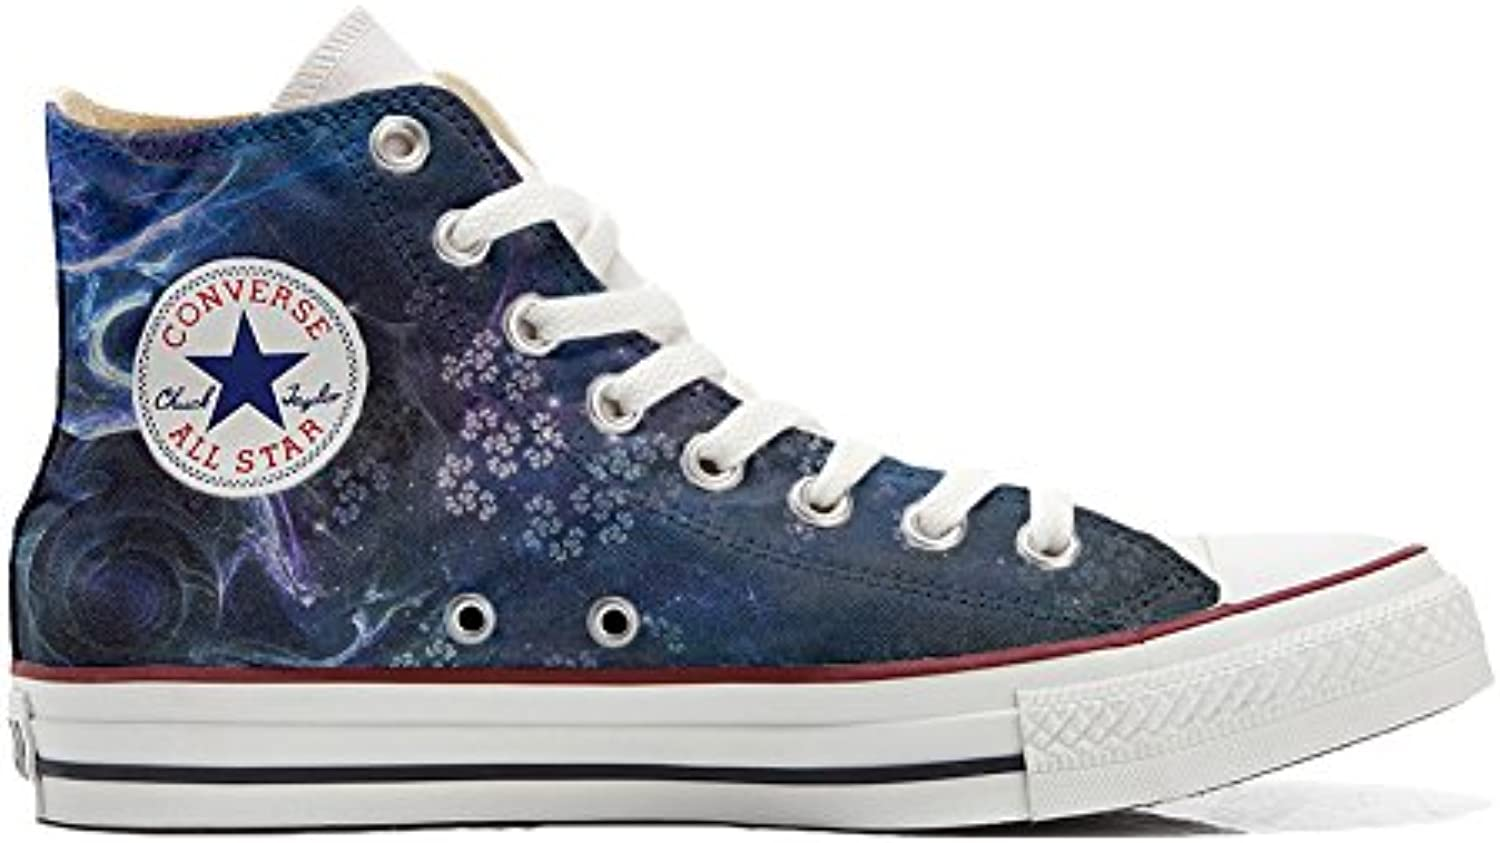 Converse All Star Zapatos Personalizados Unisex (Producto Handmade) Power Paisley -